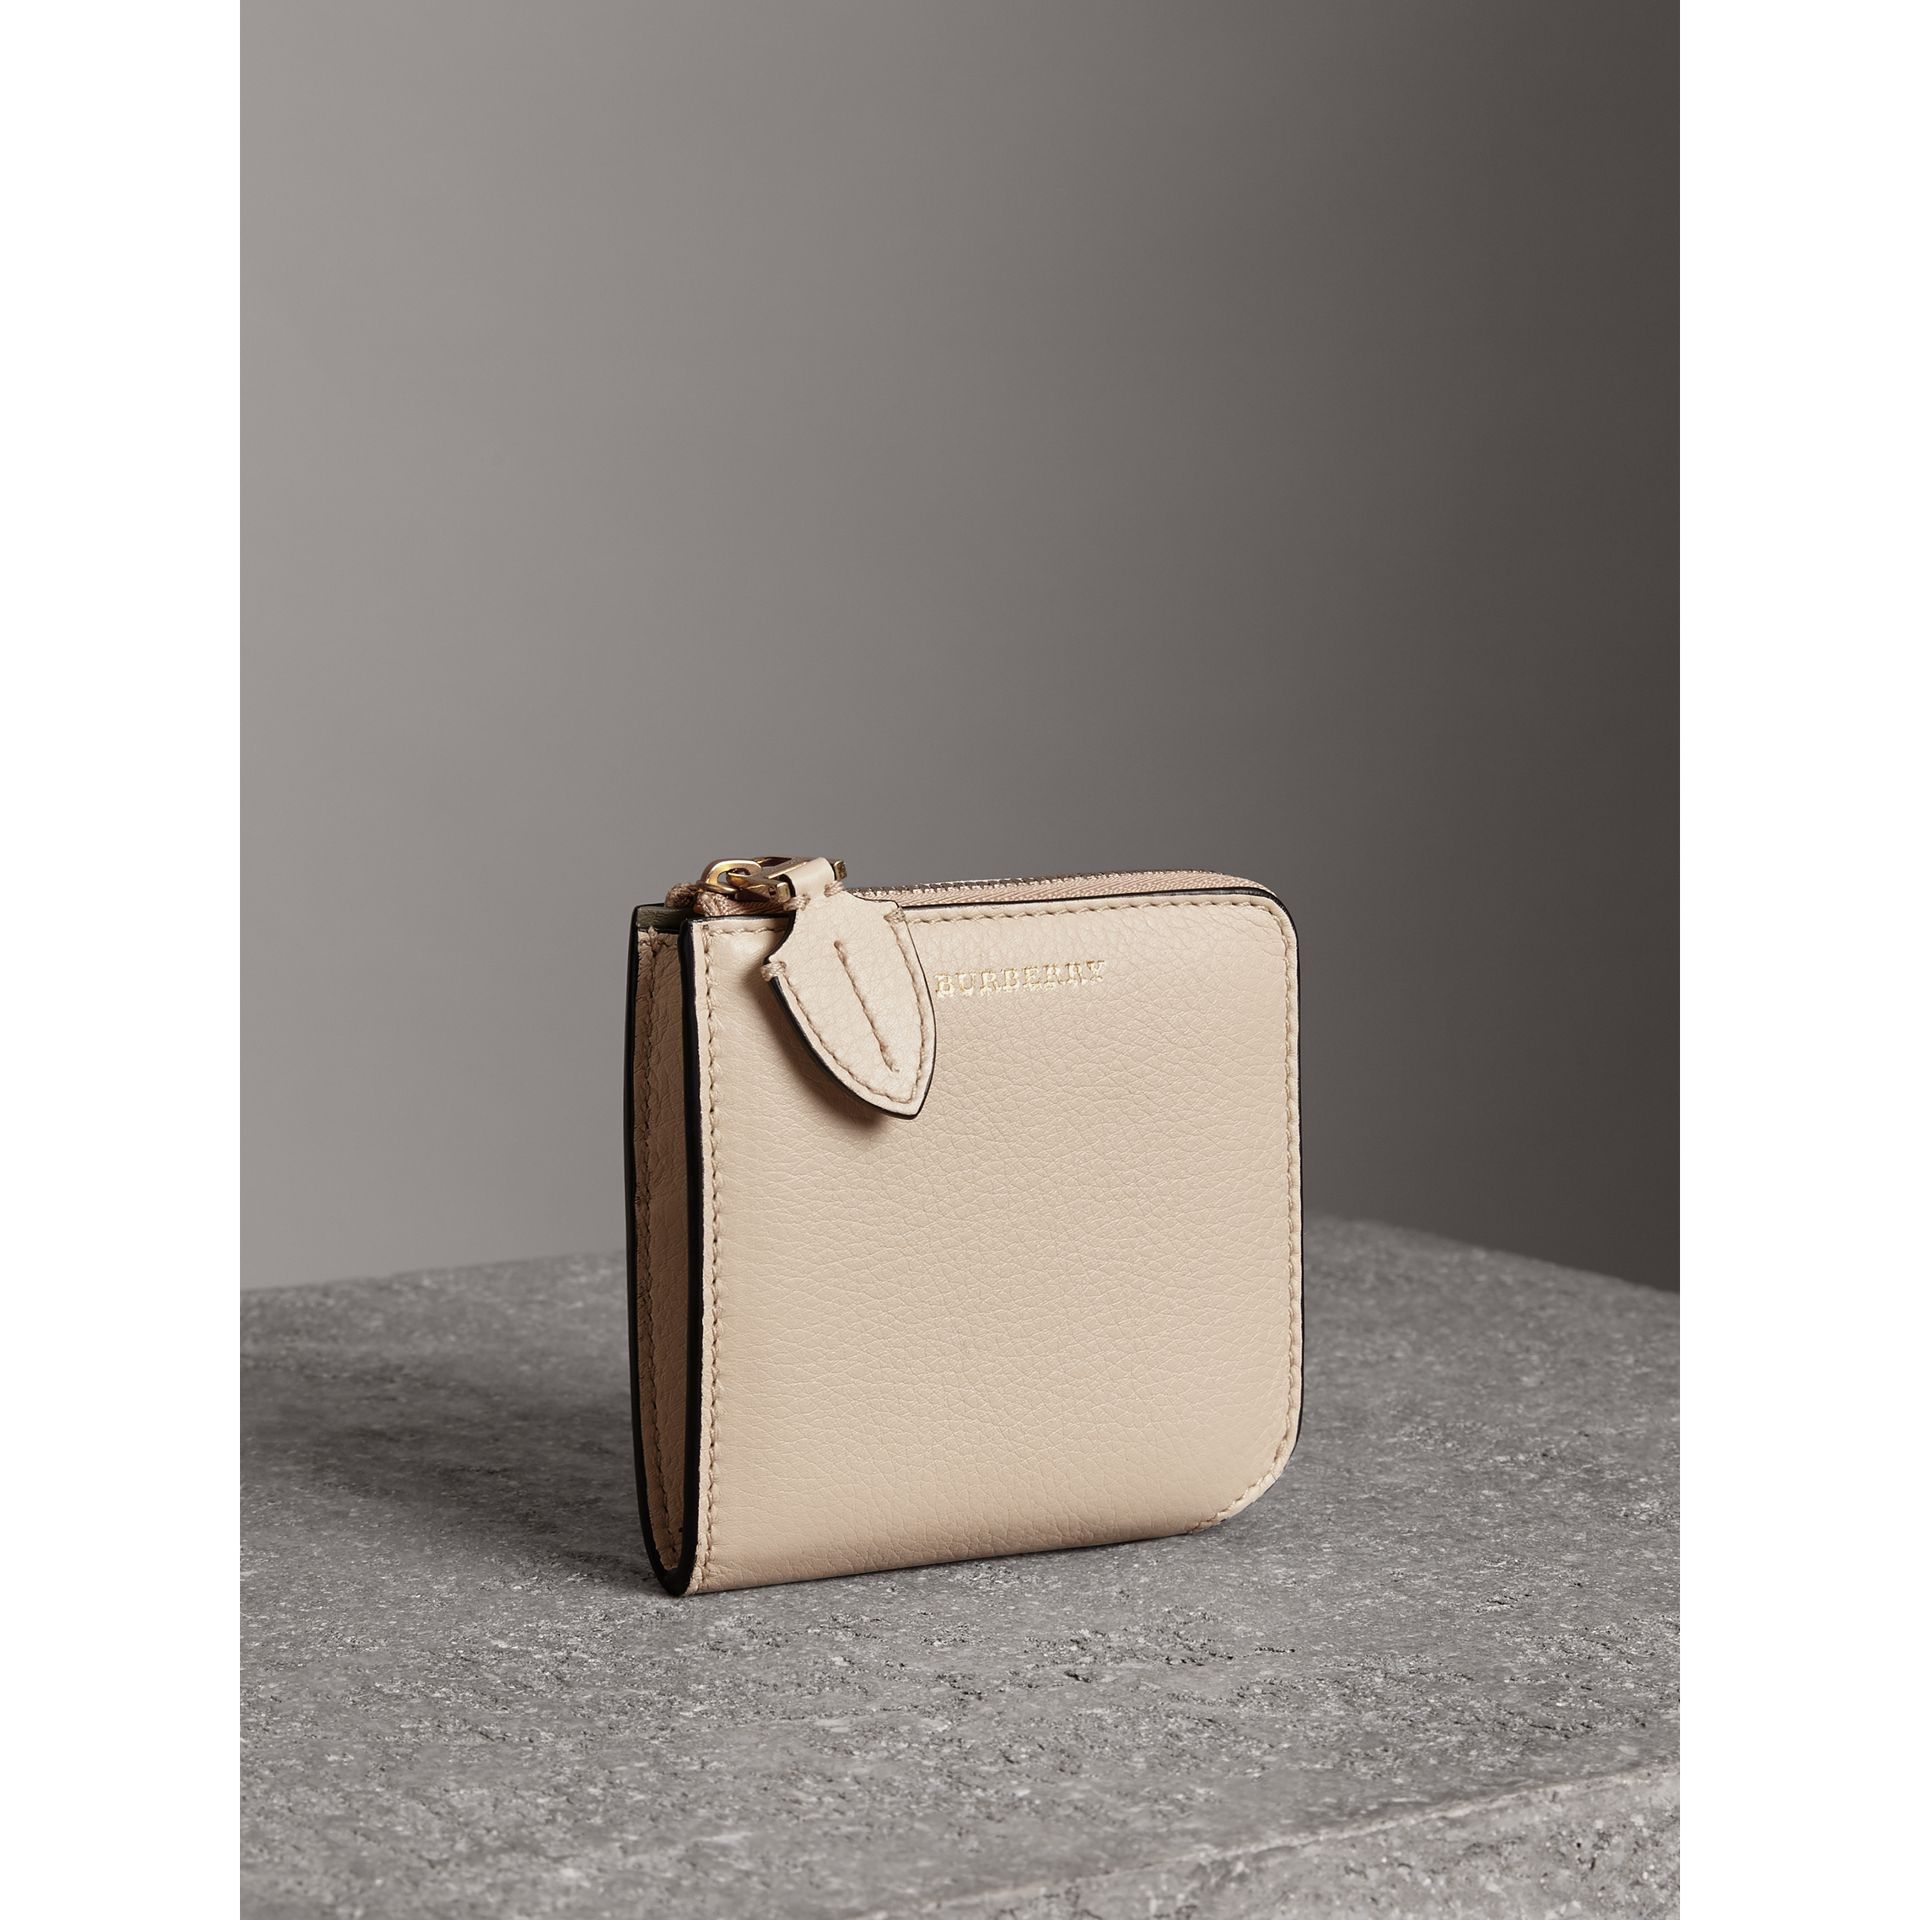 Grainy Leather Square Ziparound Wallet in Limestone - Women | Burberry Singapore - gallery image 4